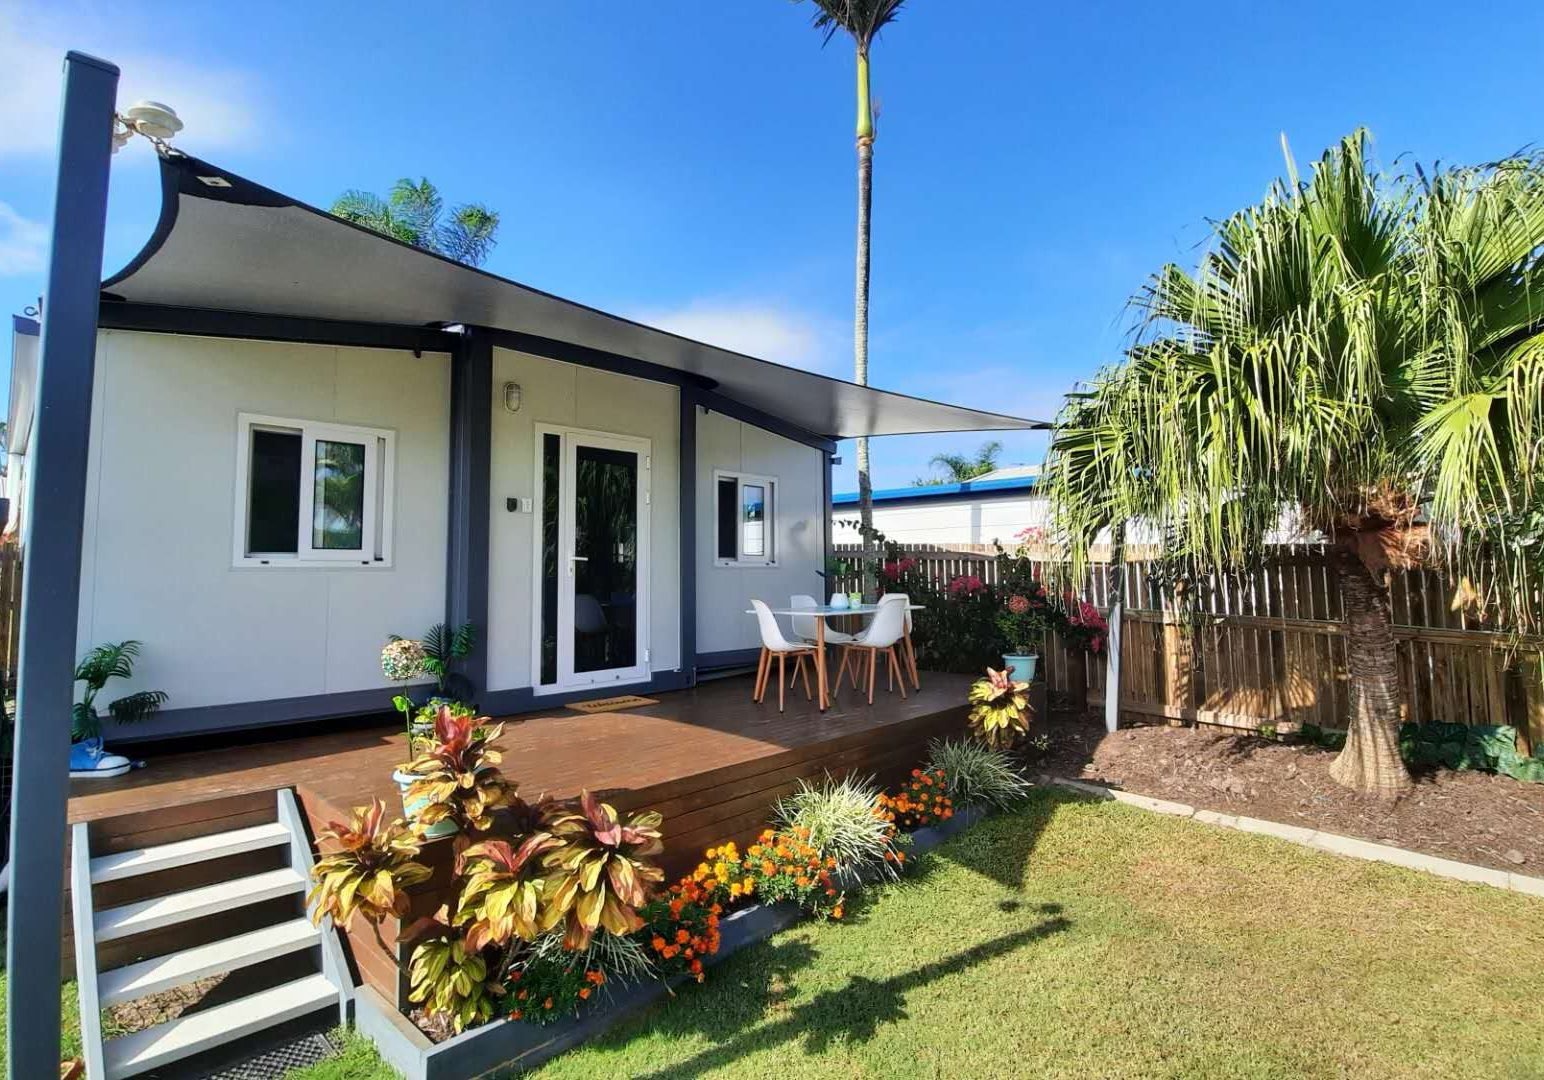 The Keppel 1 Bedroom Granny Flat with Deck and shade sail